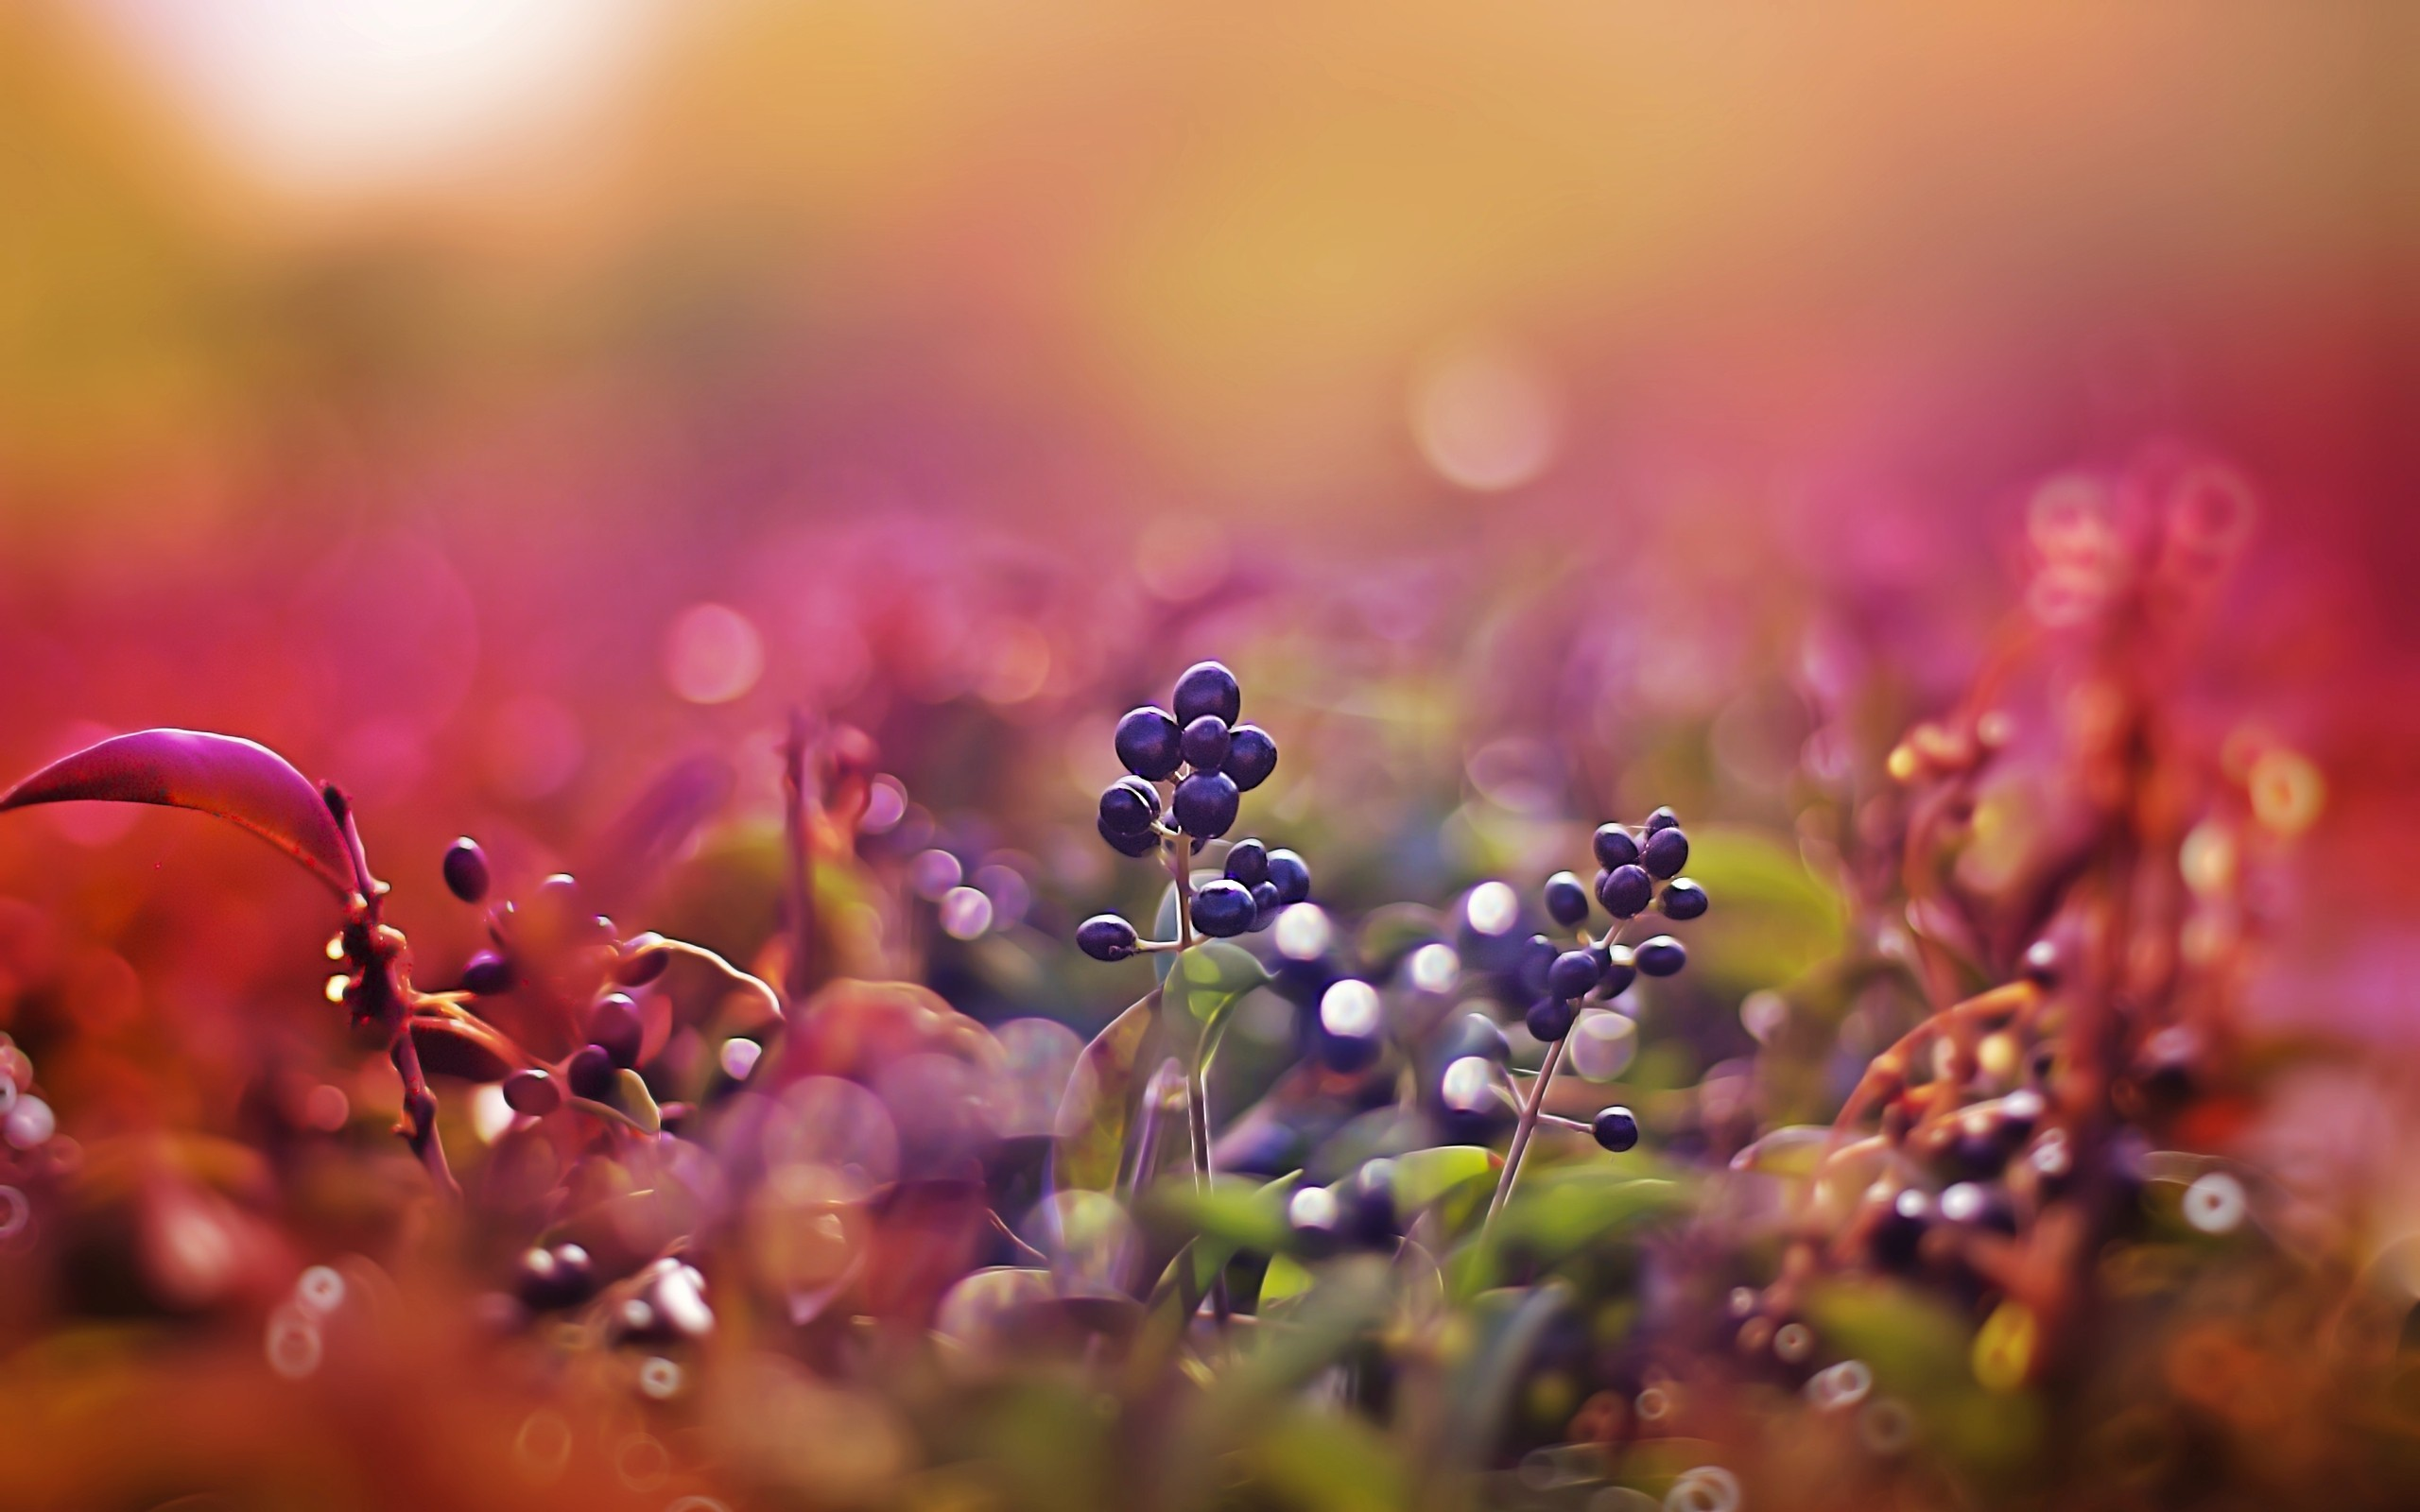 nature macro Berries blurred HD Wallpaper